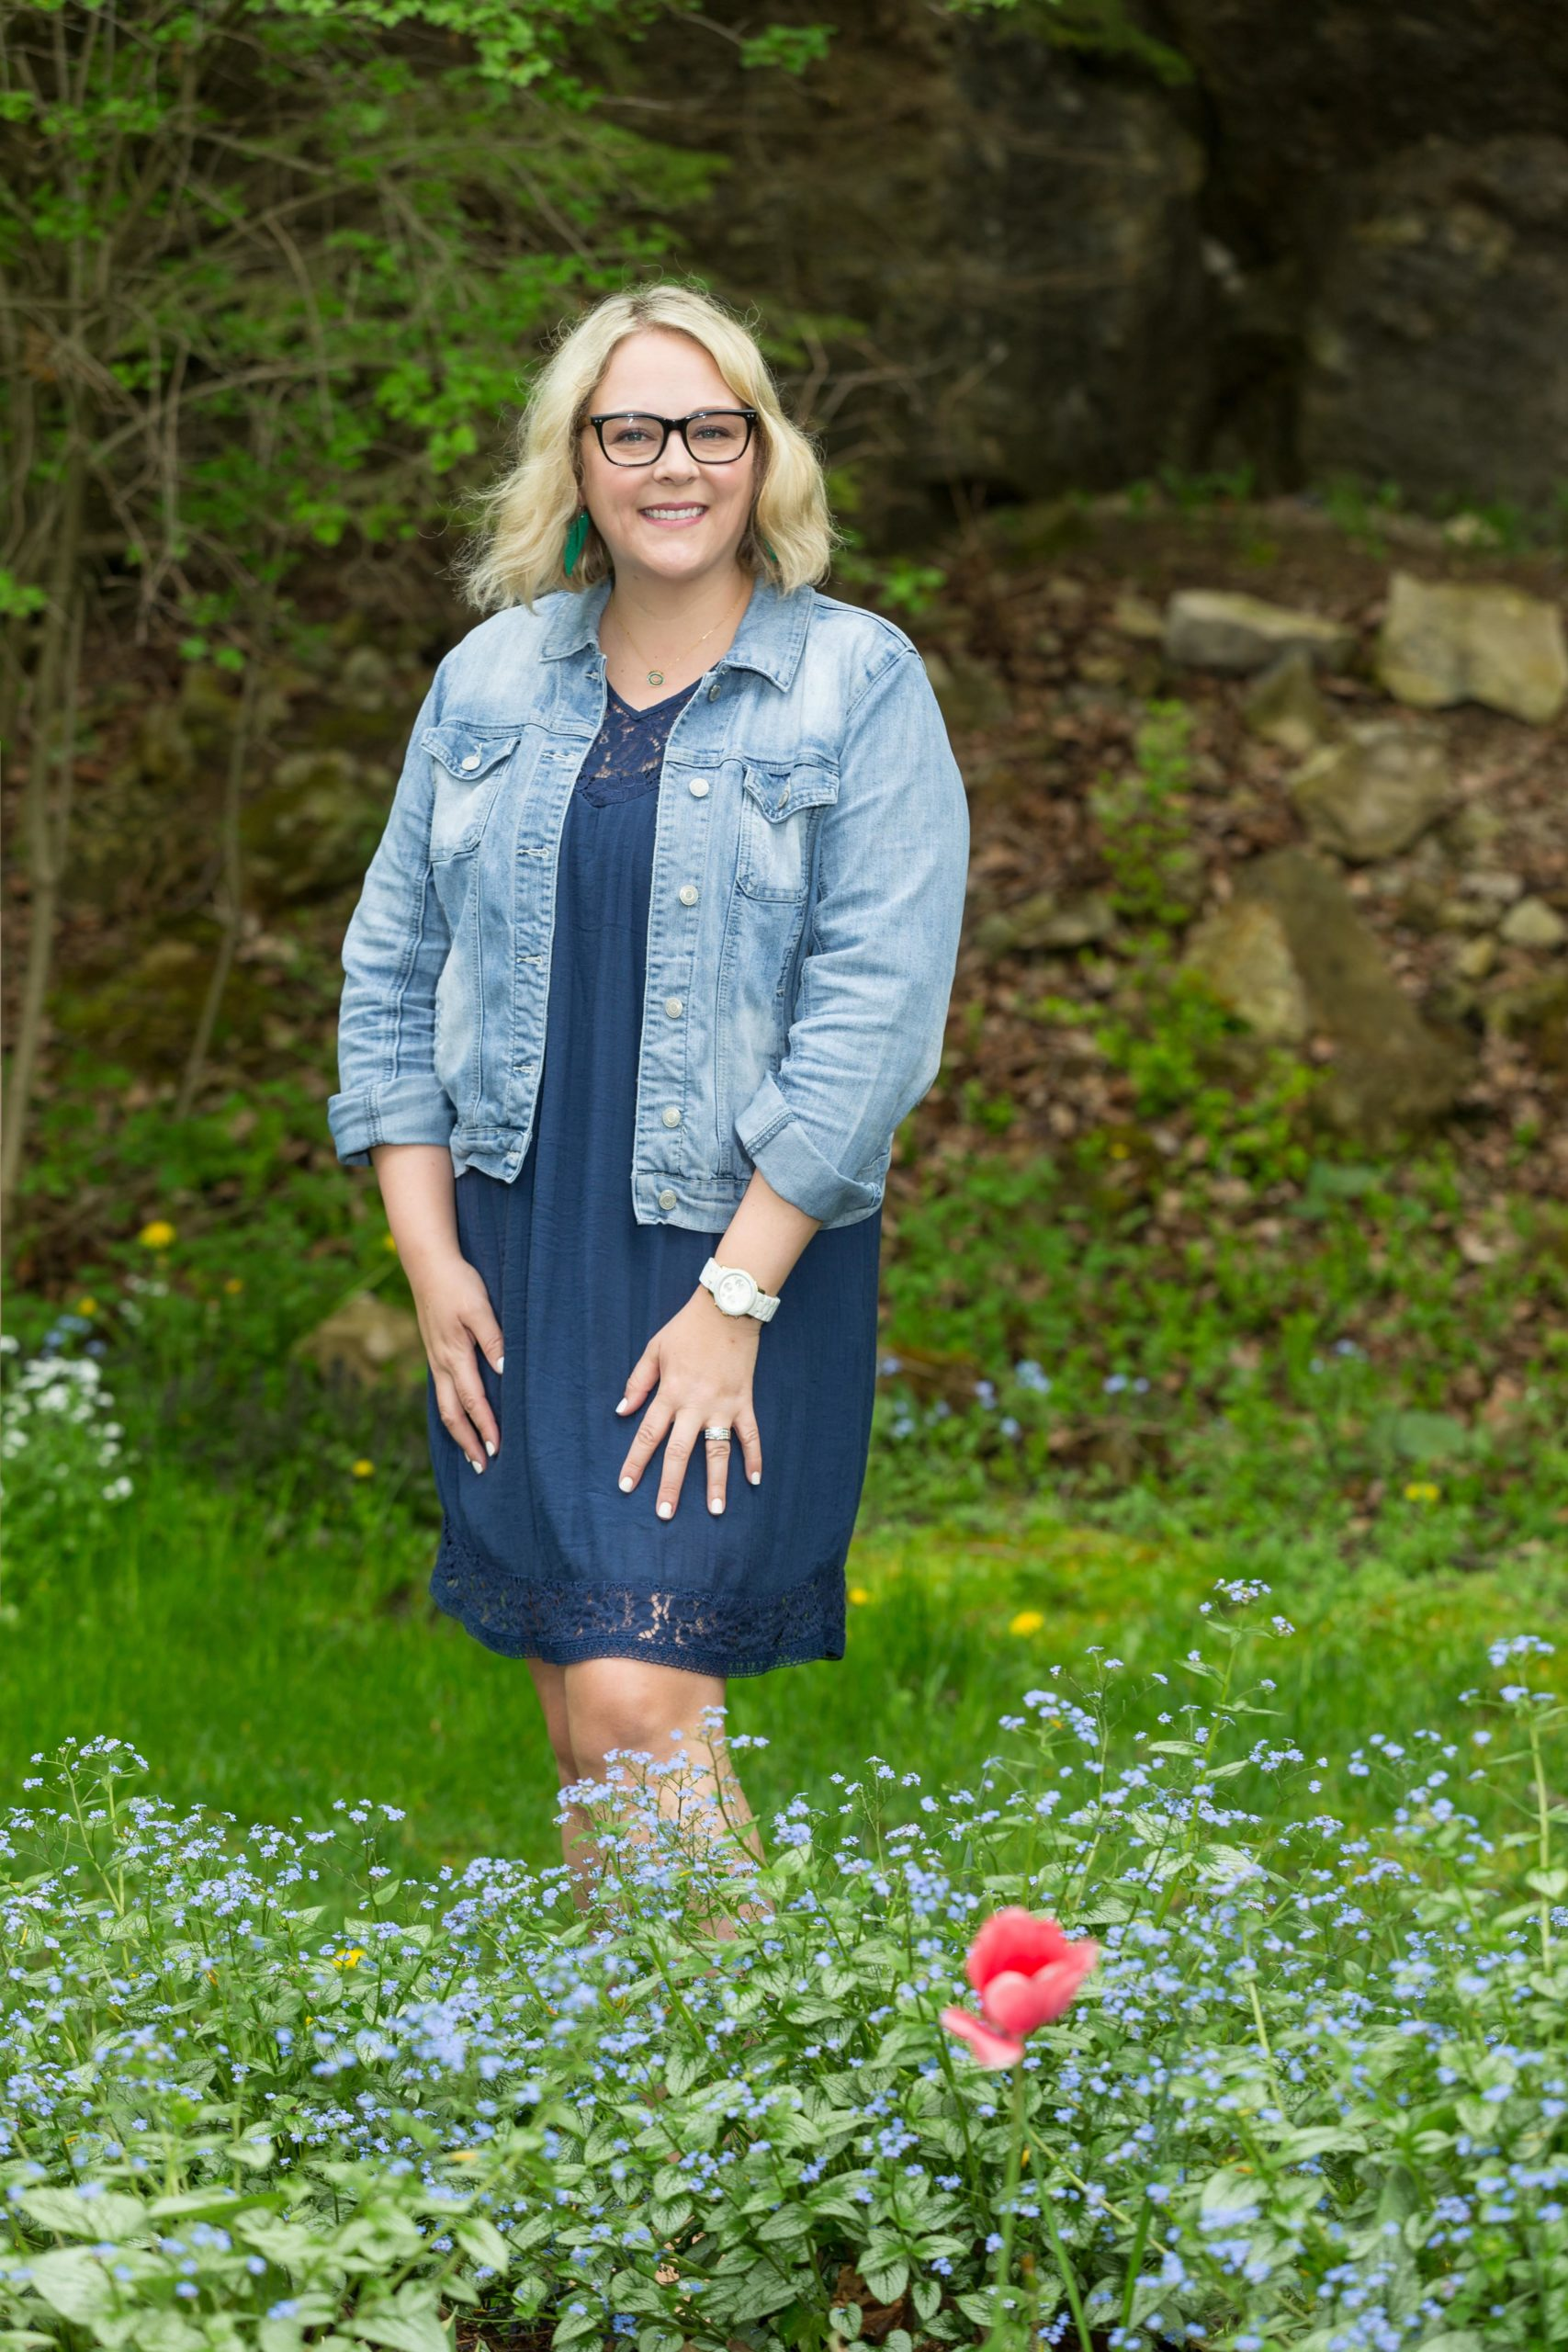 SOMMER-POQUETTE-CEO-FOUNDER-KEEP-IT-REAL-SOCIAL-MARKETING-AGENCY-NORTHERN-MICHIGAN